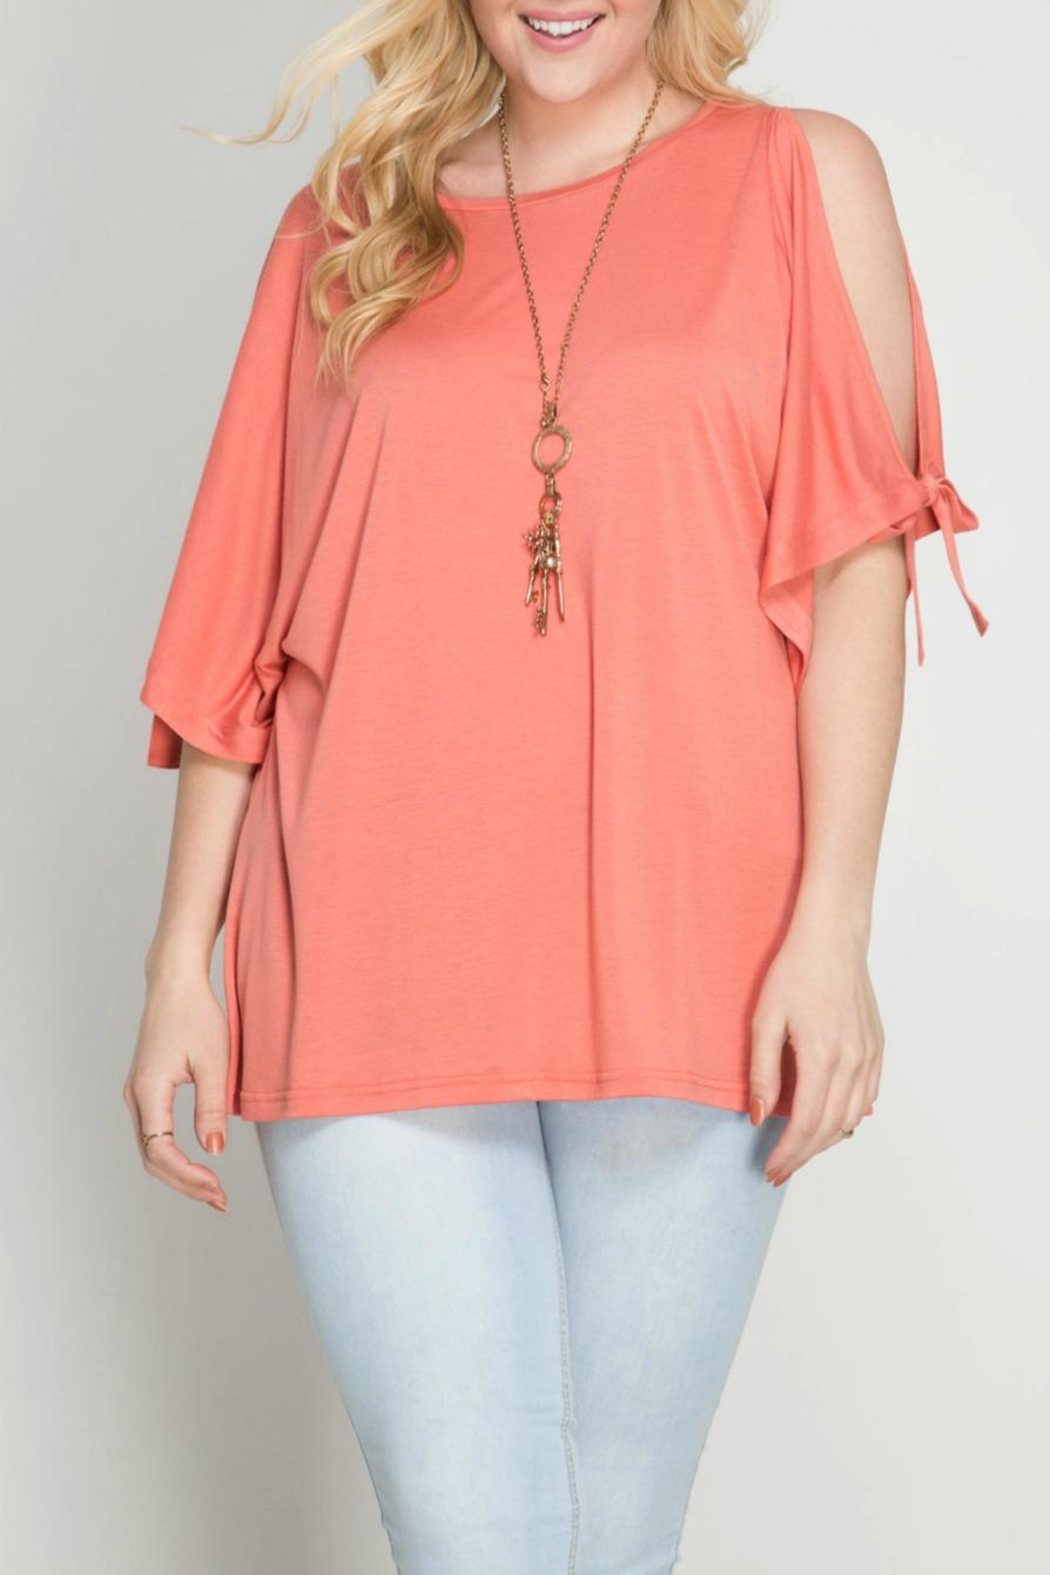 She + Sky Coral Open Shoulder Top - Front Cropped Image